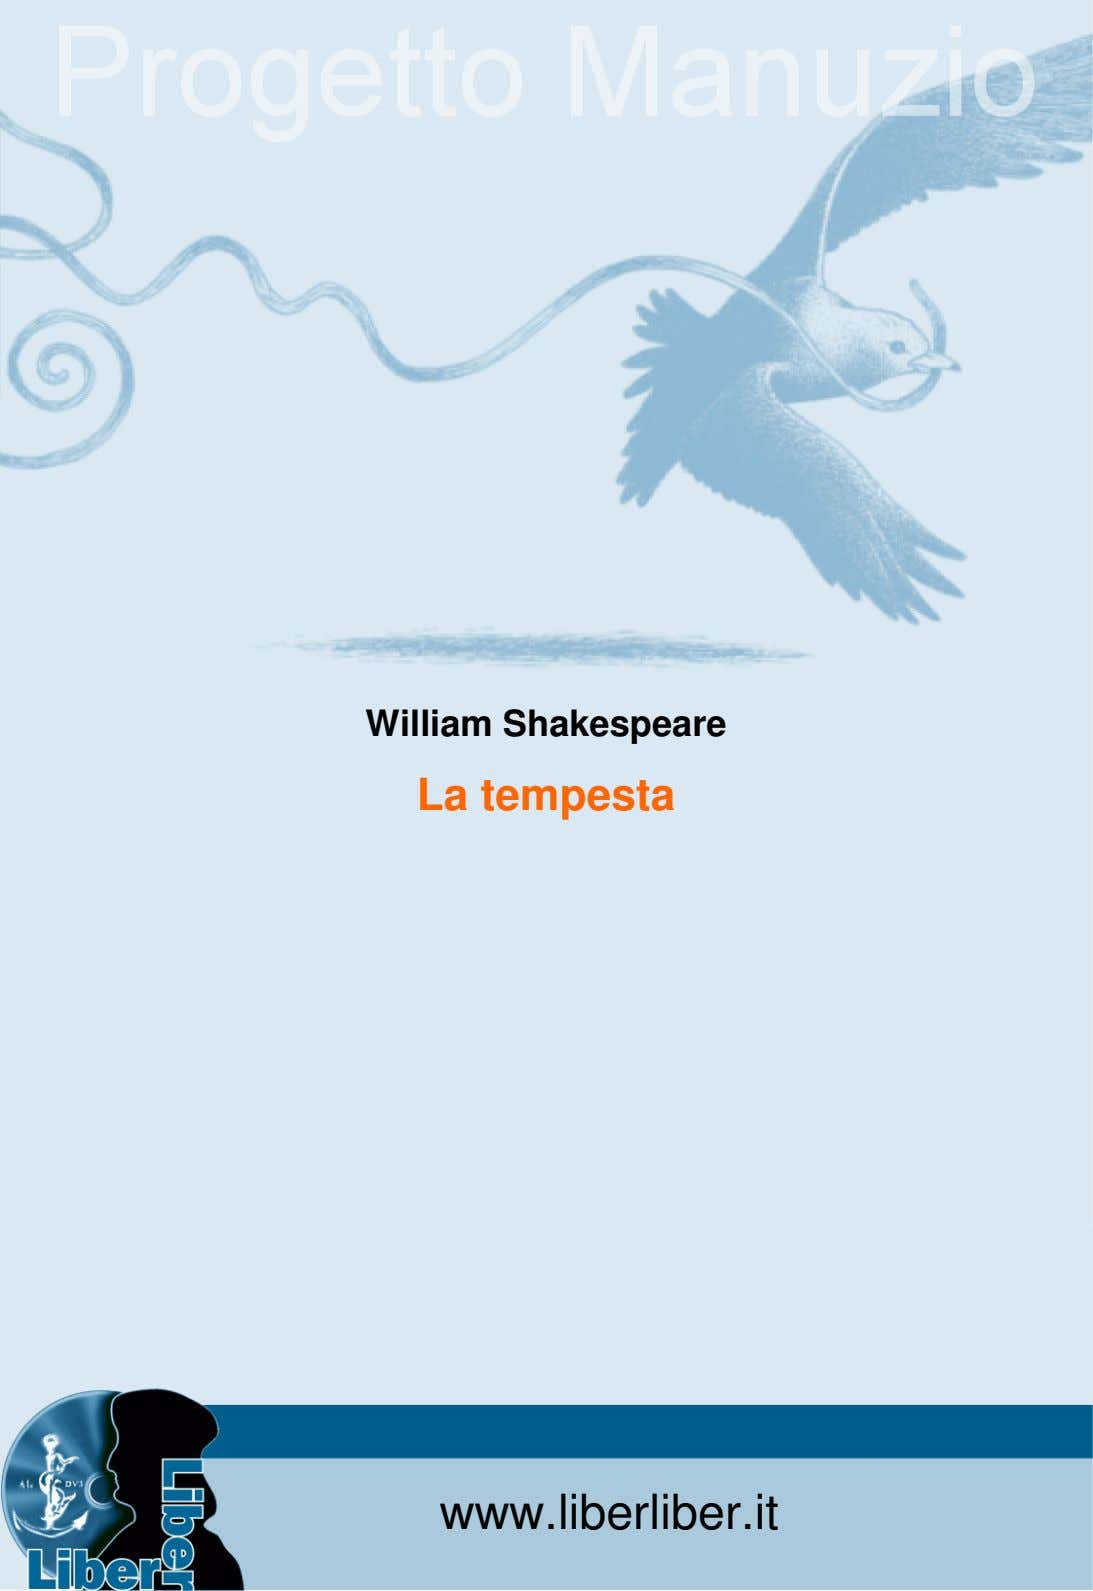 William Shakespeare La tempesta www.liberliber.it 1